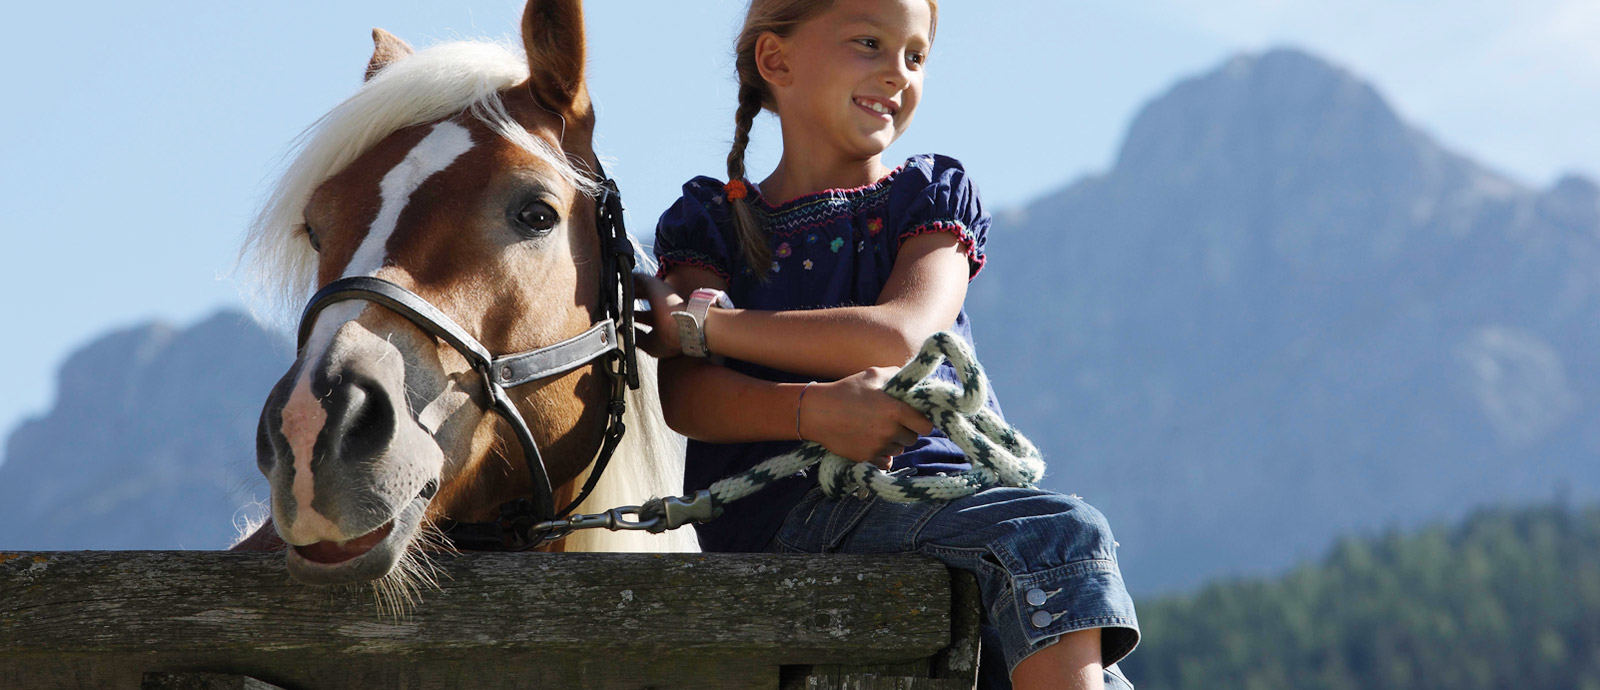 Horseriding, South Tyrol